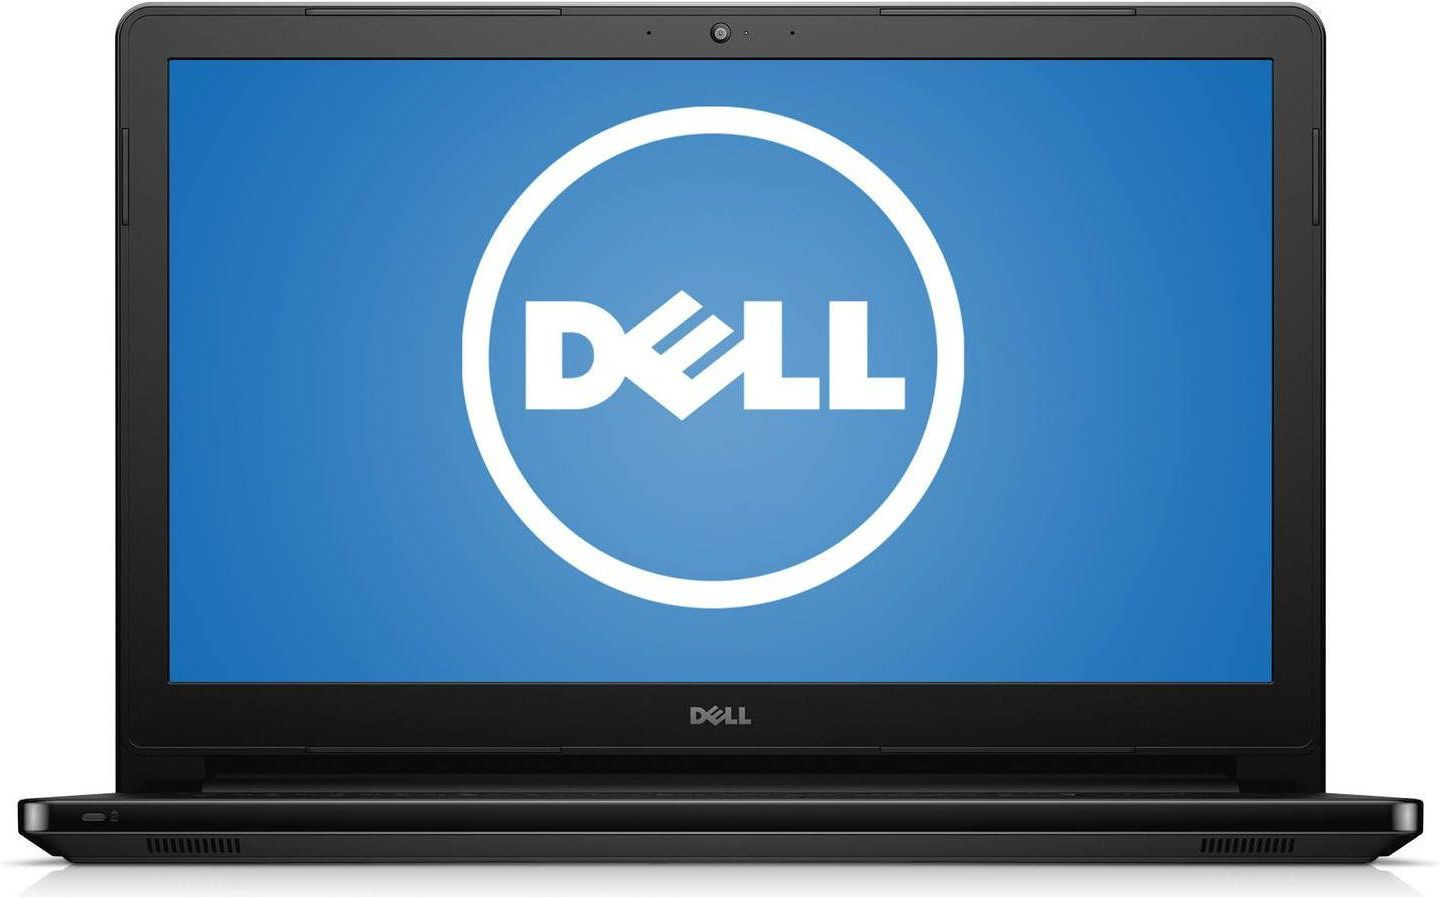 Dell Insprion Core i7 7th Gen - (8 GB/1 TB HDD/Windows 10/2 GB Graphics) 3567 Laptop(15.6 inch, Black, 2.5 kg) image